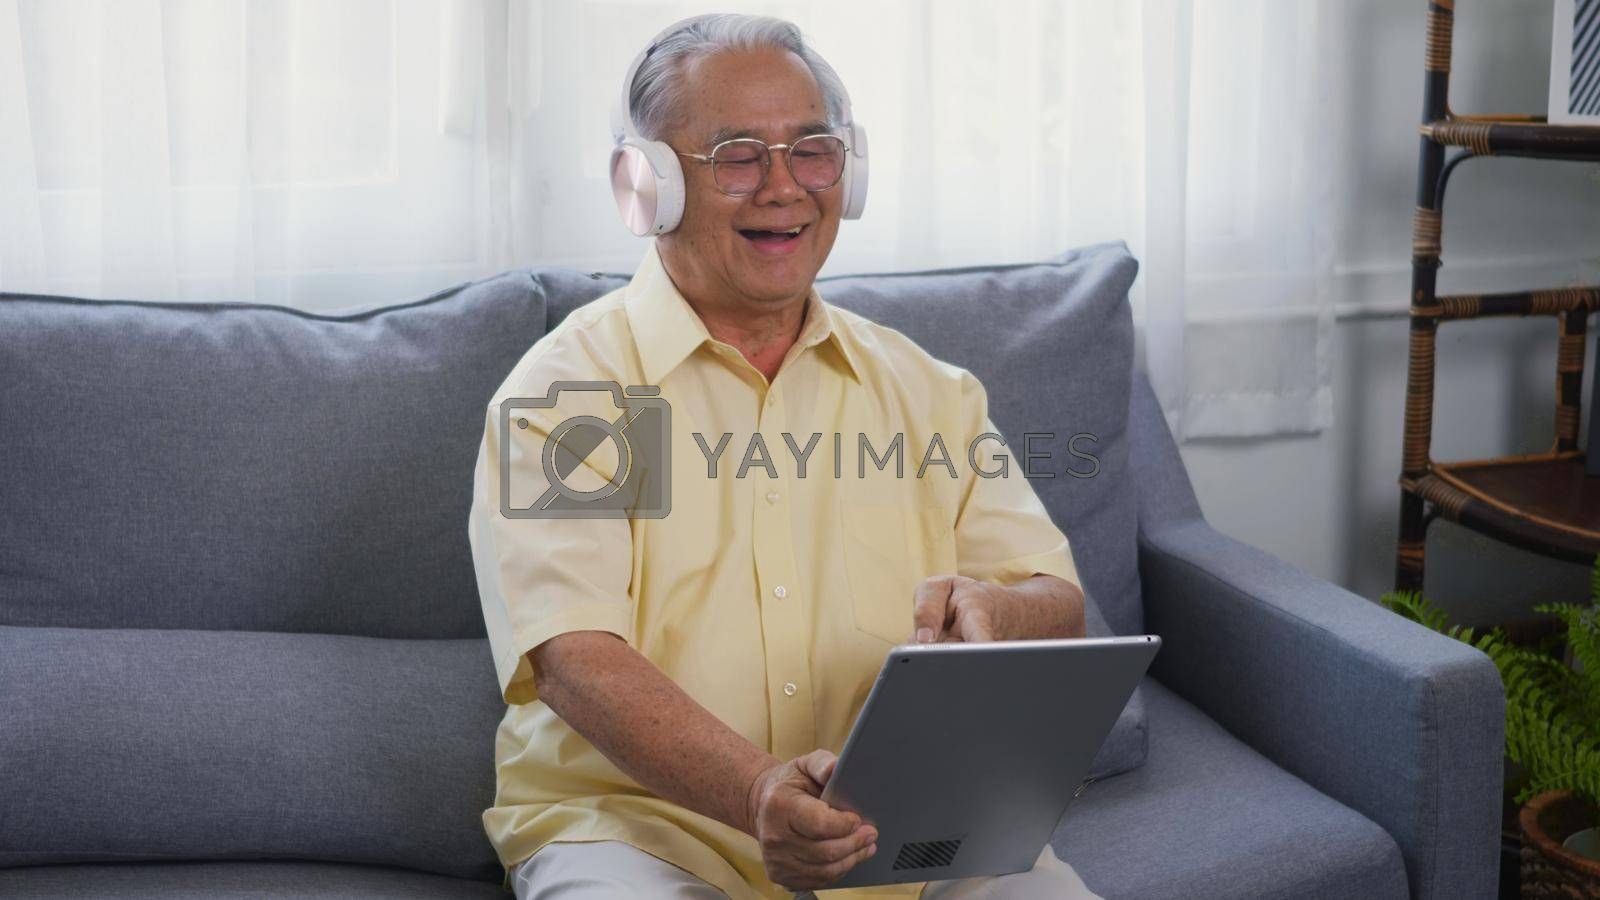 Old man grandfather smile with eyeglasses relaxing wear headphones is listening to music using a digital tablet, Asian happy senior old gray-haired sitting in living room on sofa at home video call